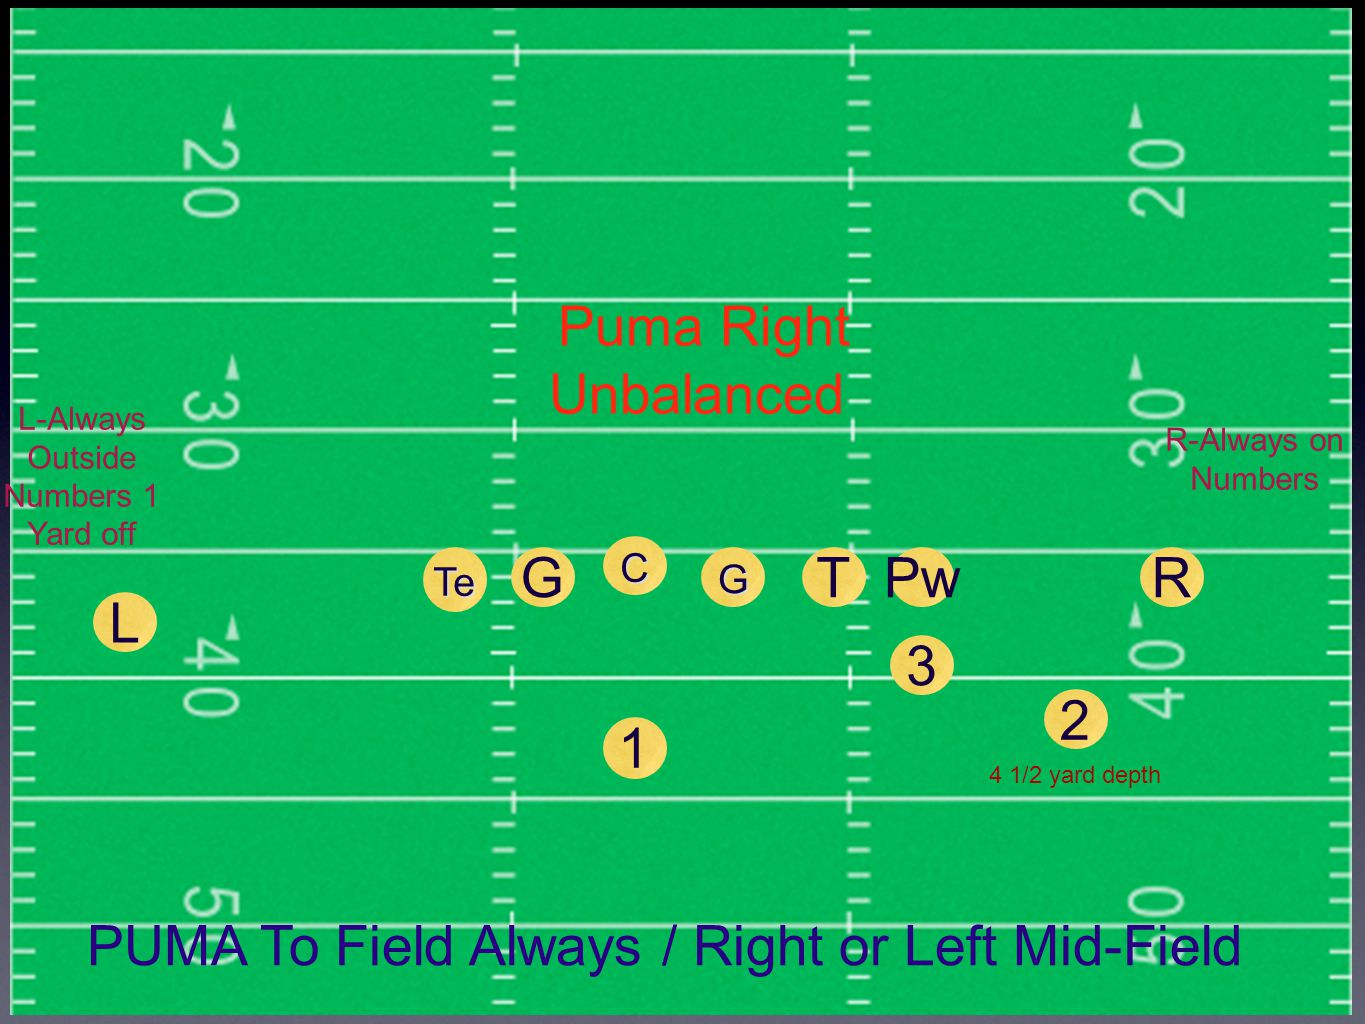 PUMA To Field Always / Right or Left Mid-Field